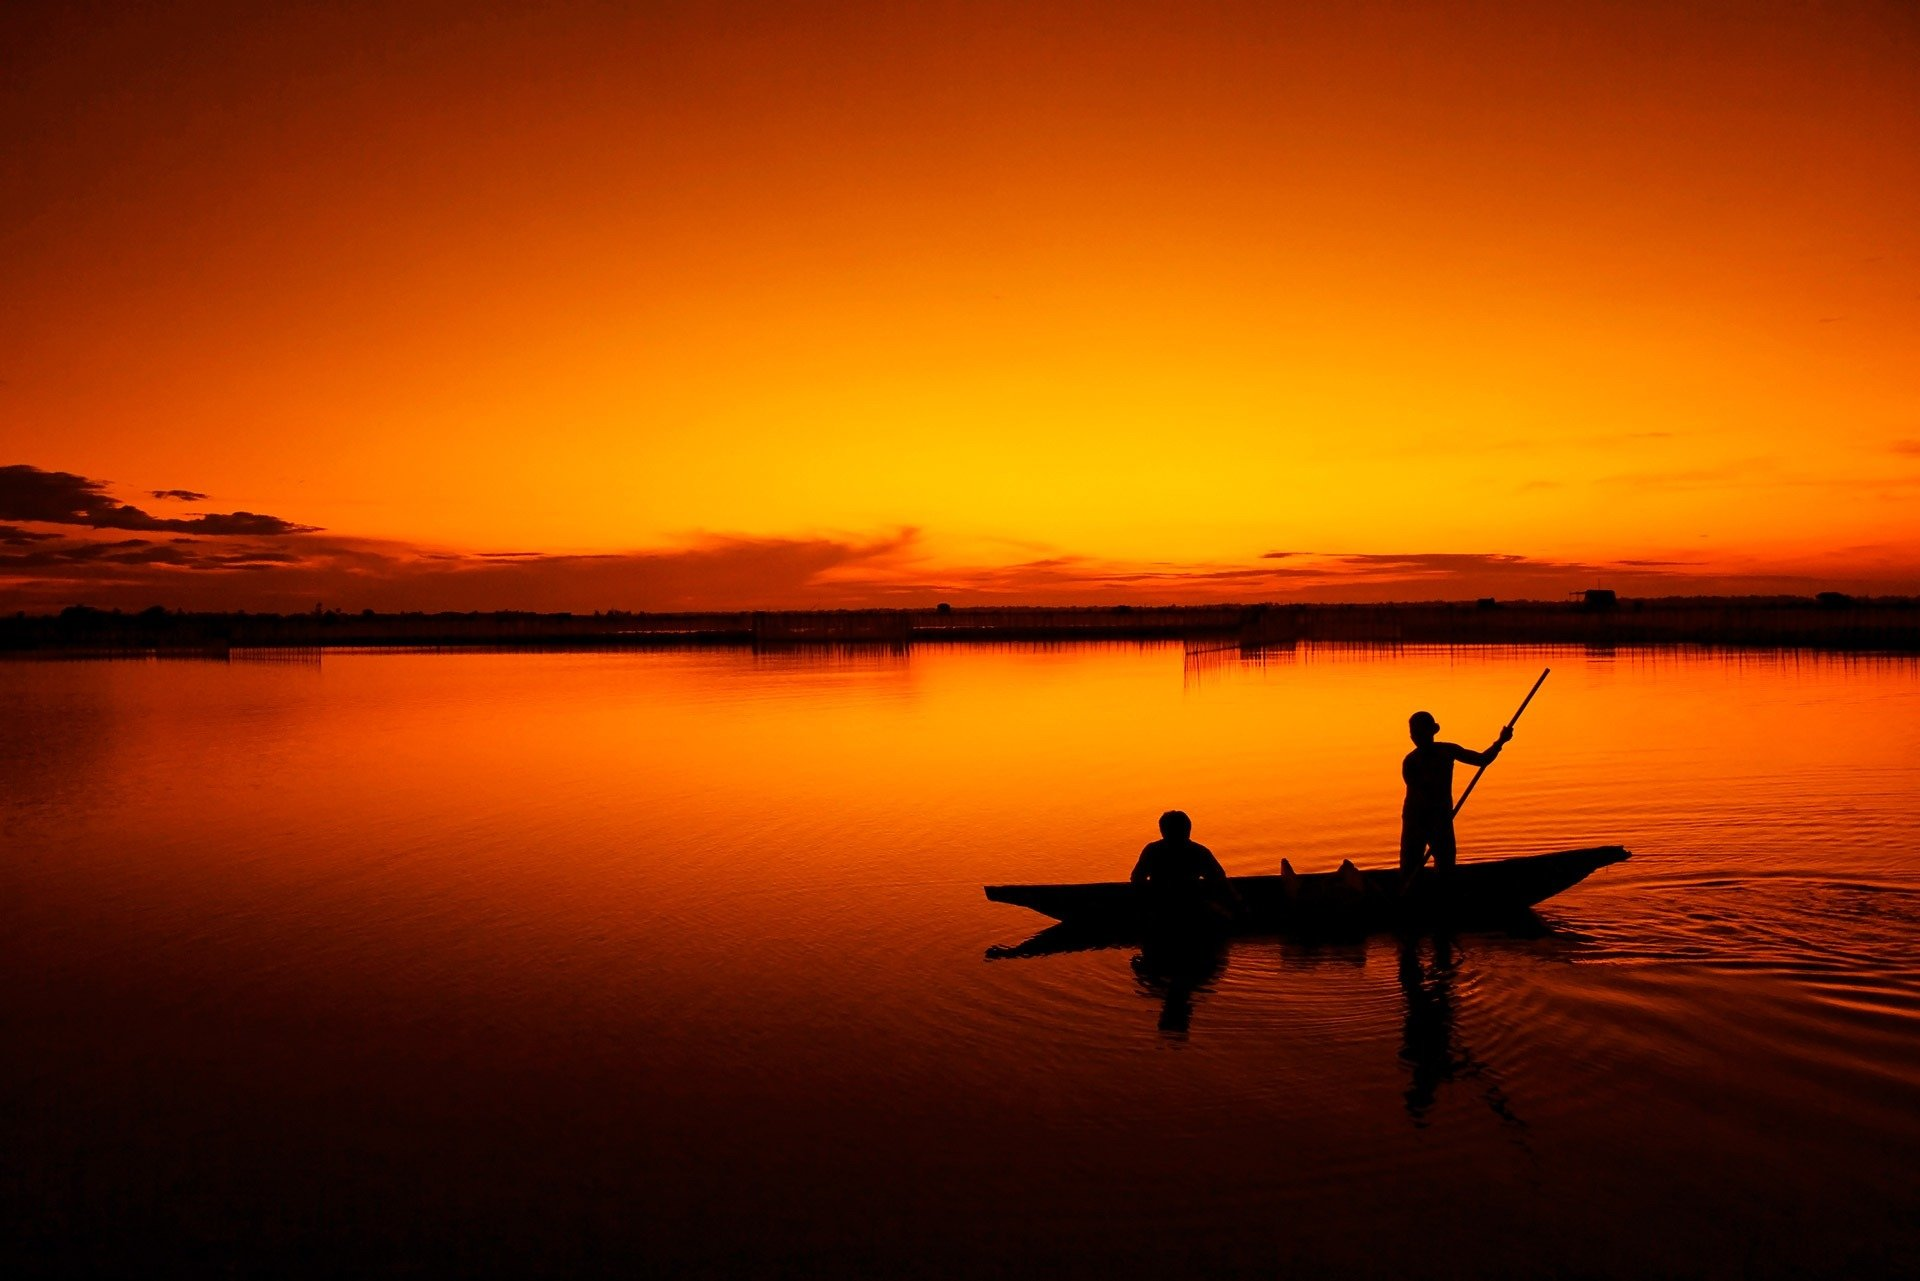 Photography - Fisherman  Sunset Orange Lagoon Boat Vietnam People Wallpaper